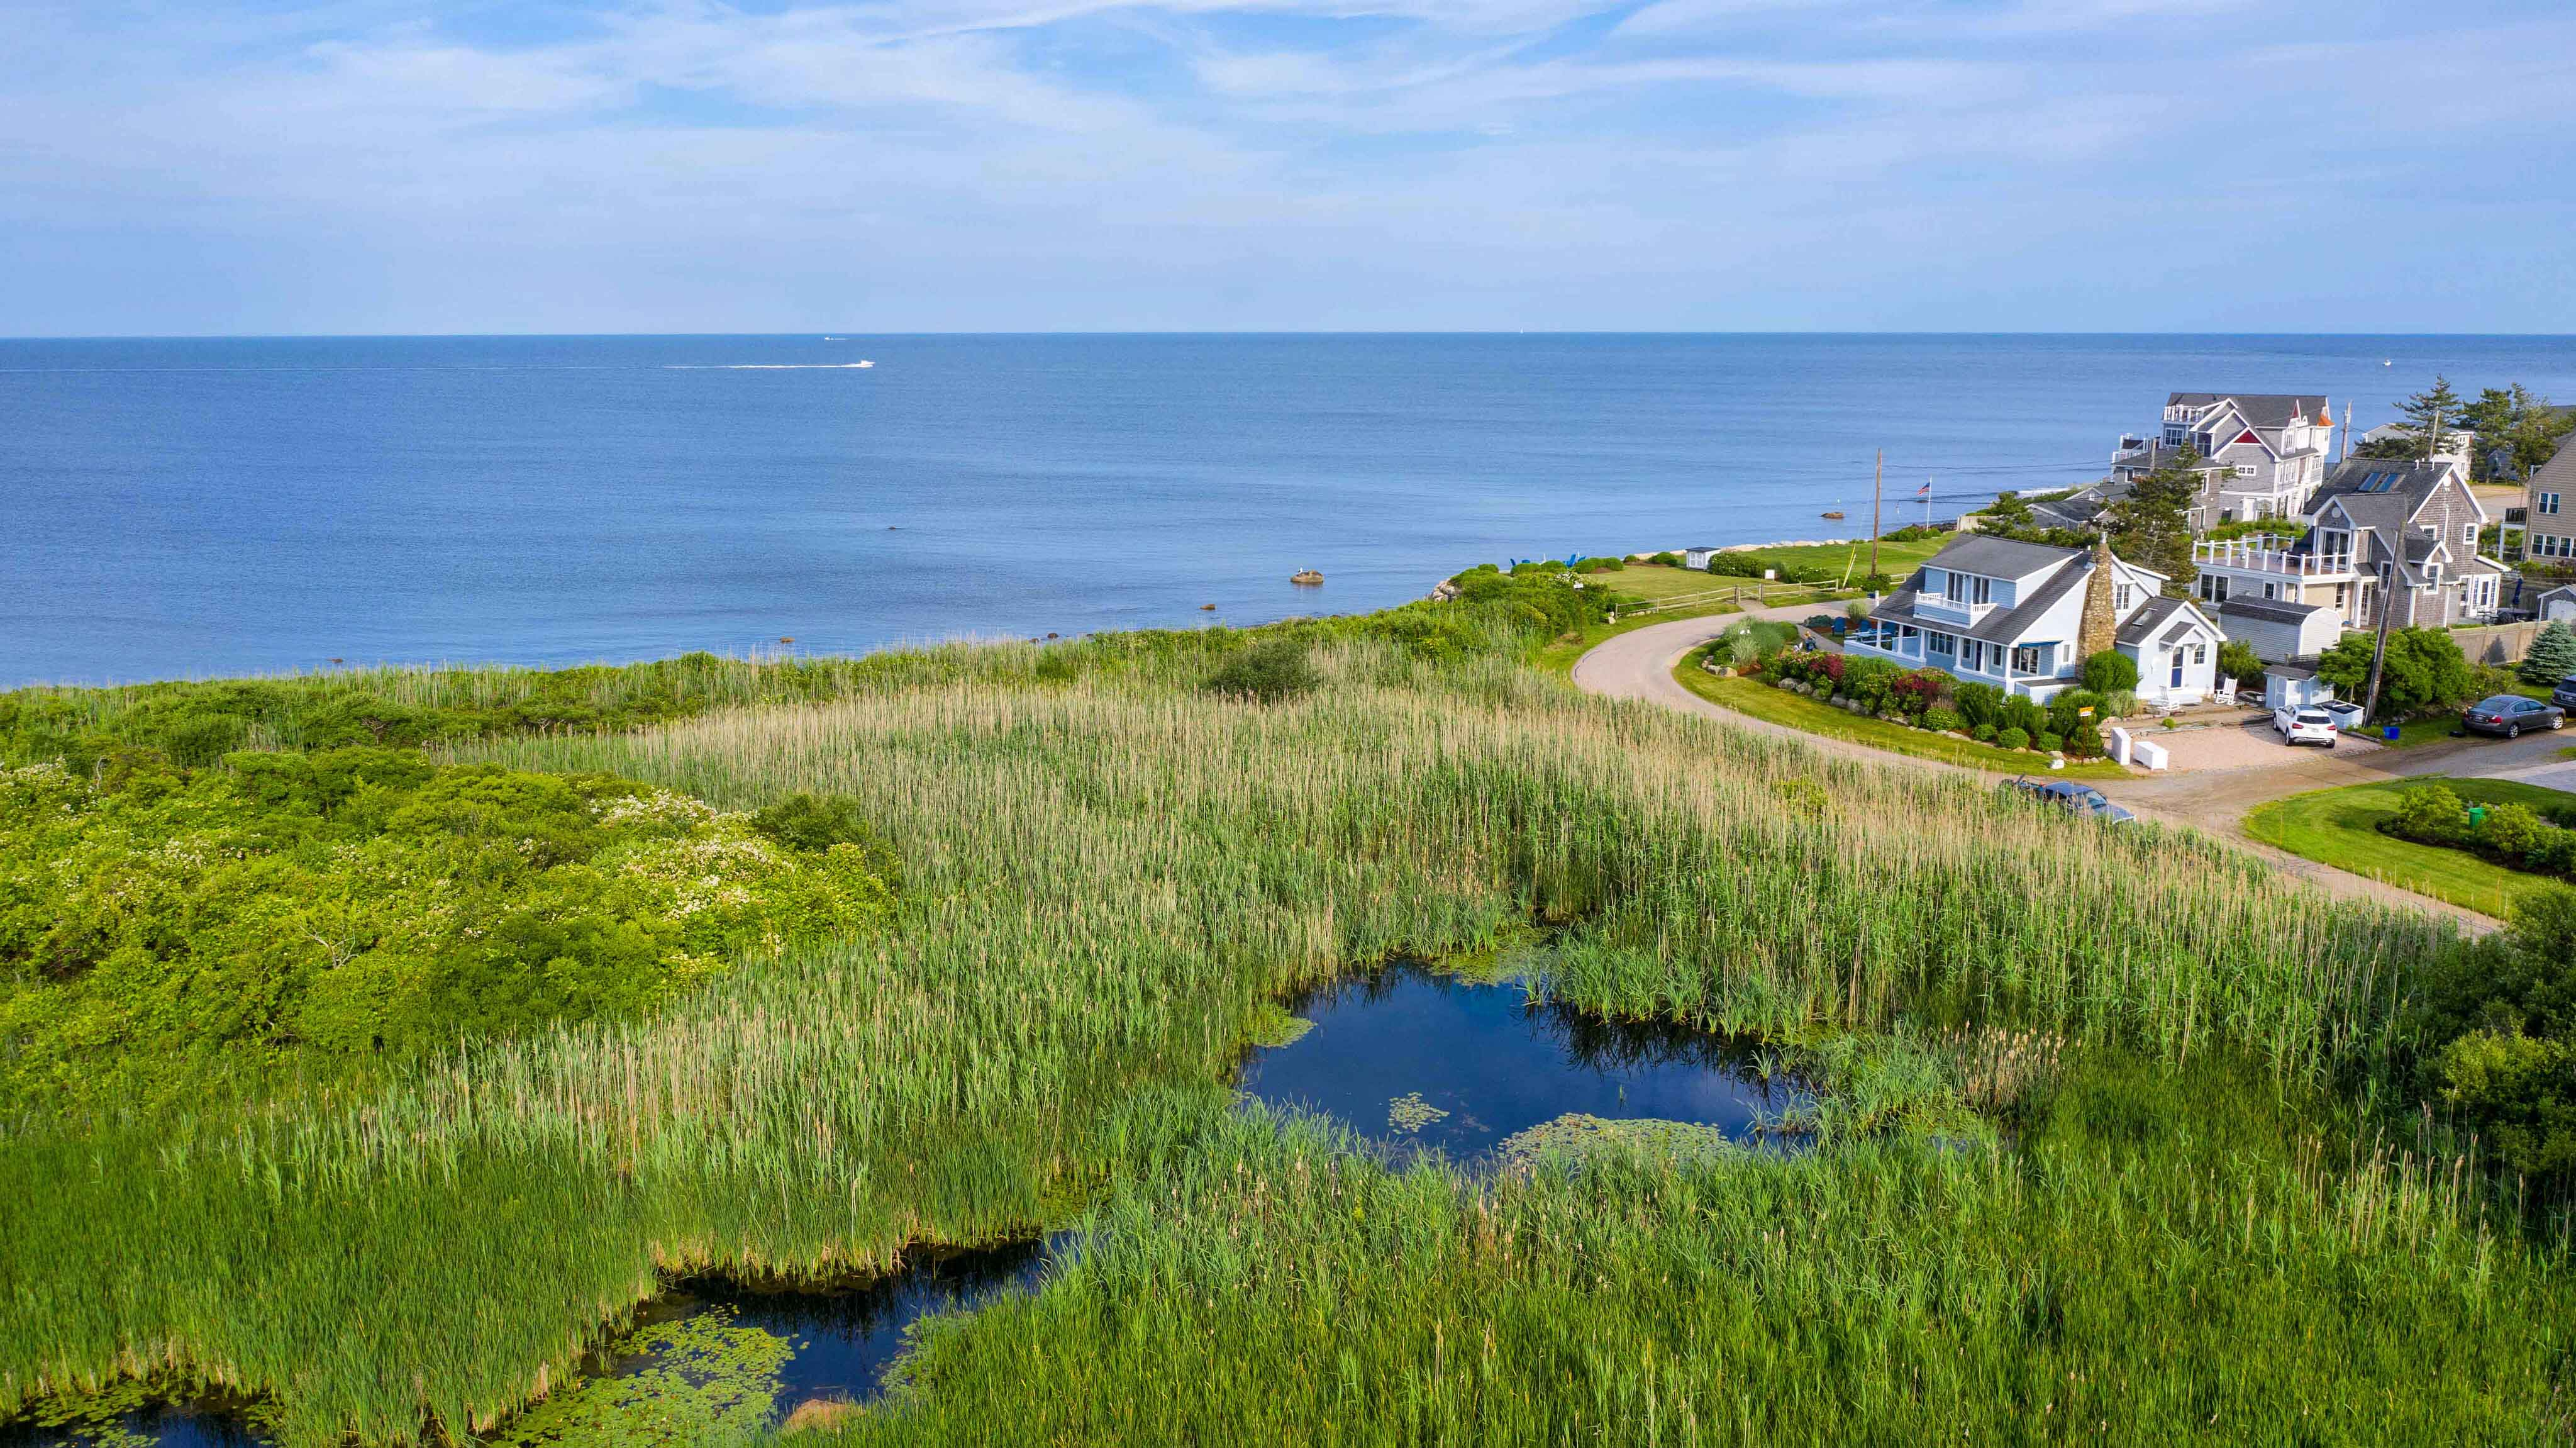 CONTEMPORARY CAPE COD OFF NARRAGANSETT'S OCEAN ROAD SELLS FOR $1.53M AFTER FOUR DAYS ON MARKET